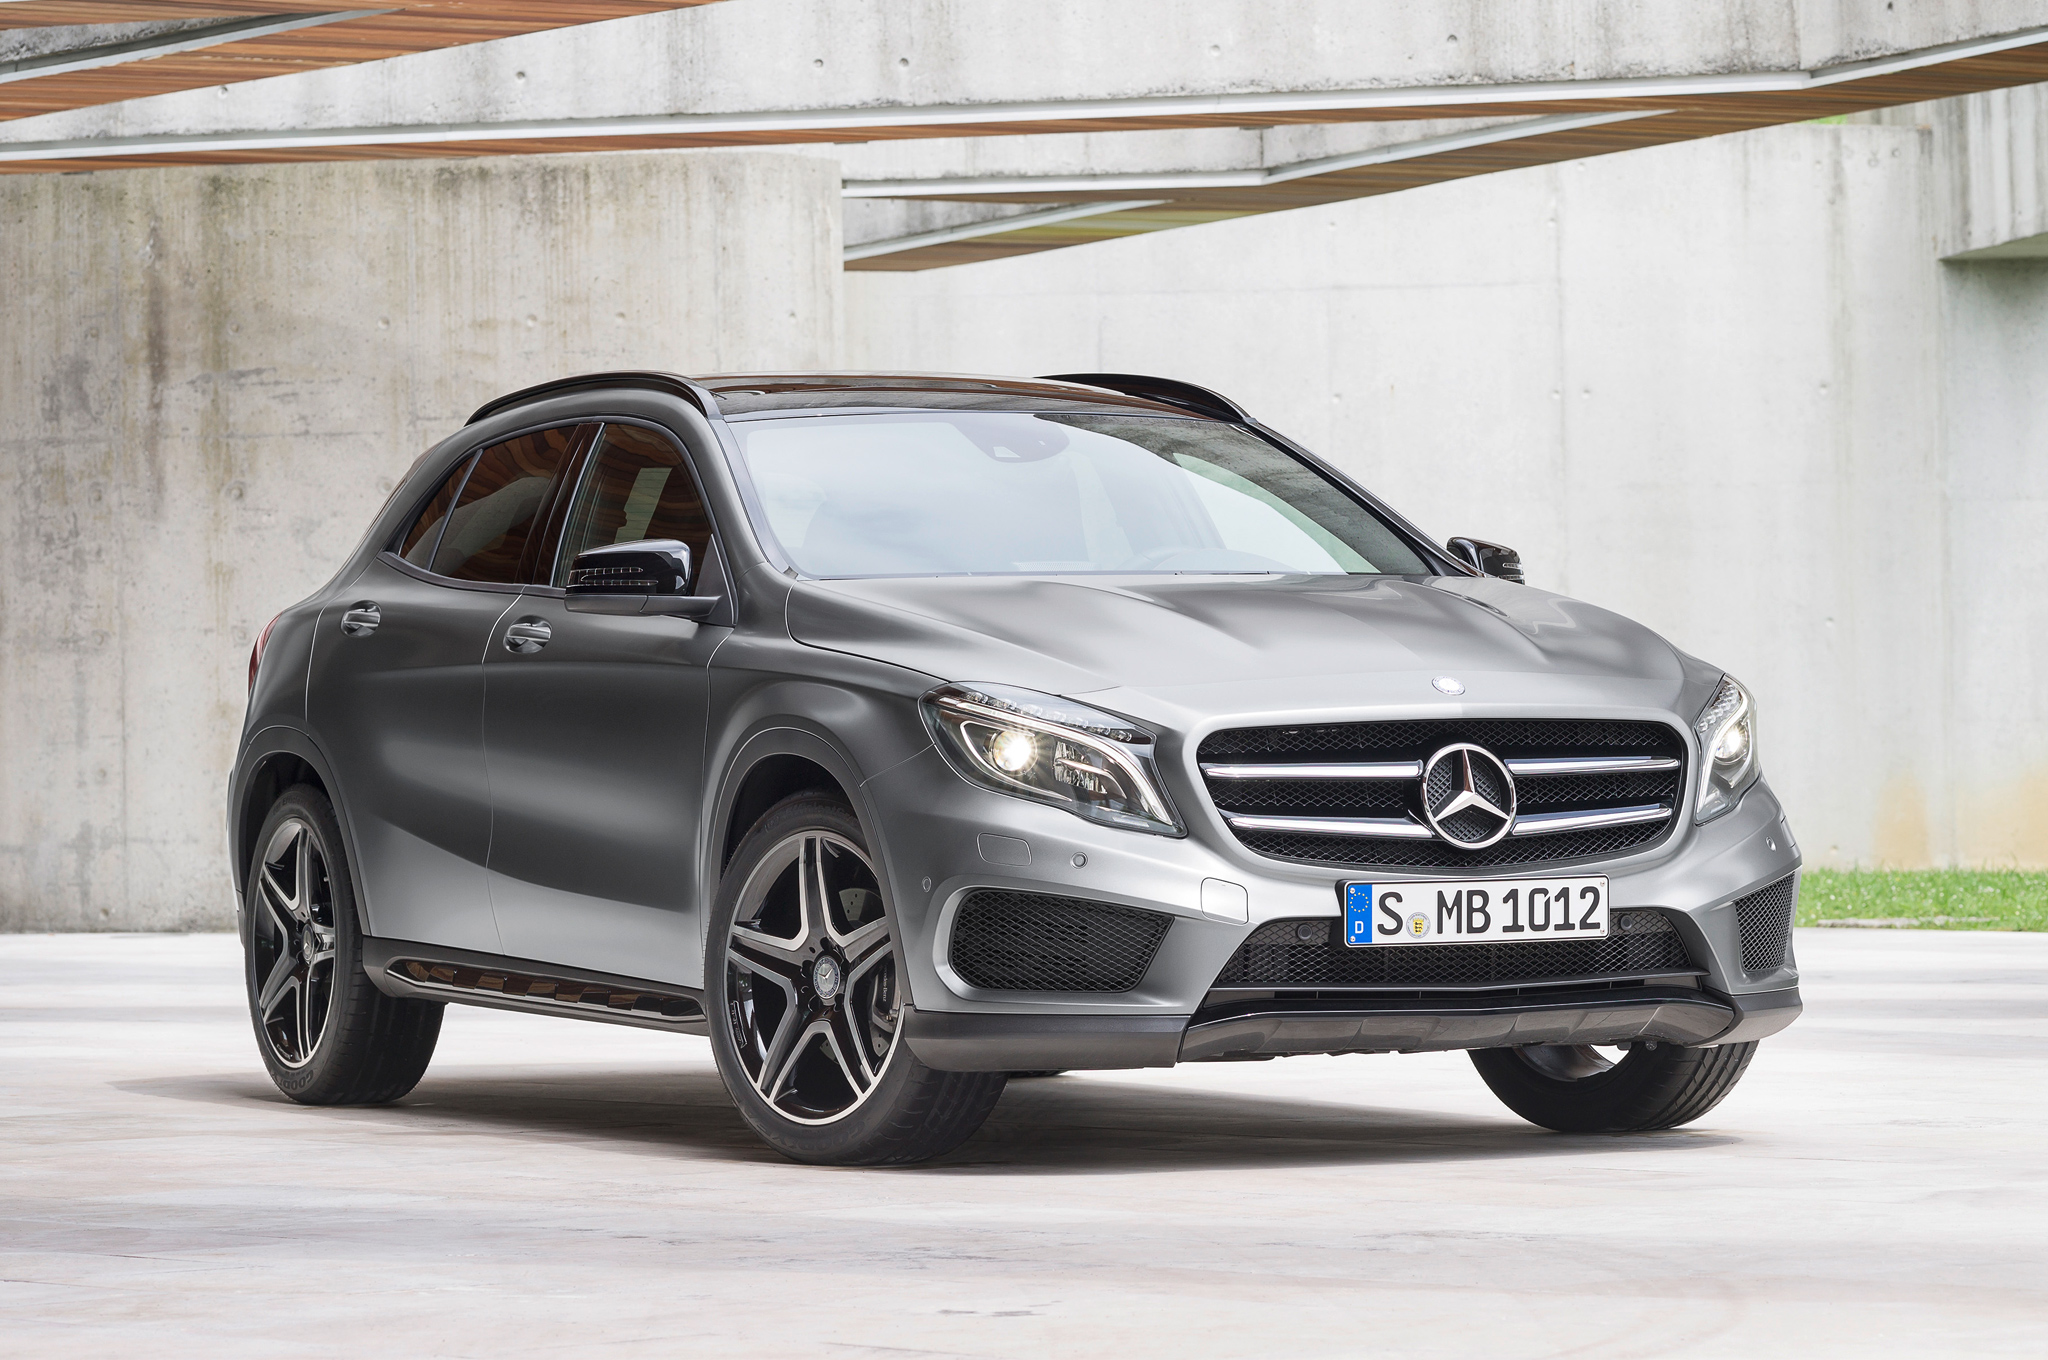 All New 2015 Mercedes-Benz GLA-Class Exterior